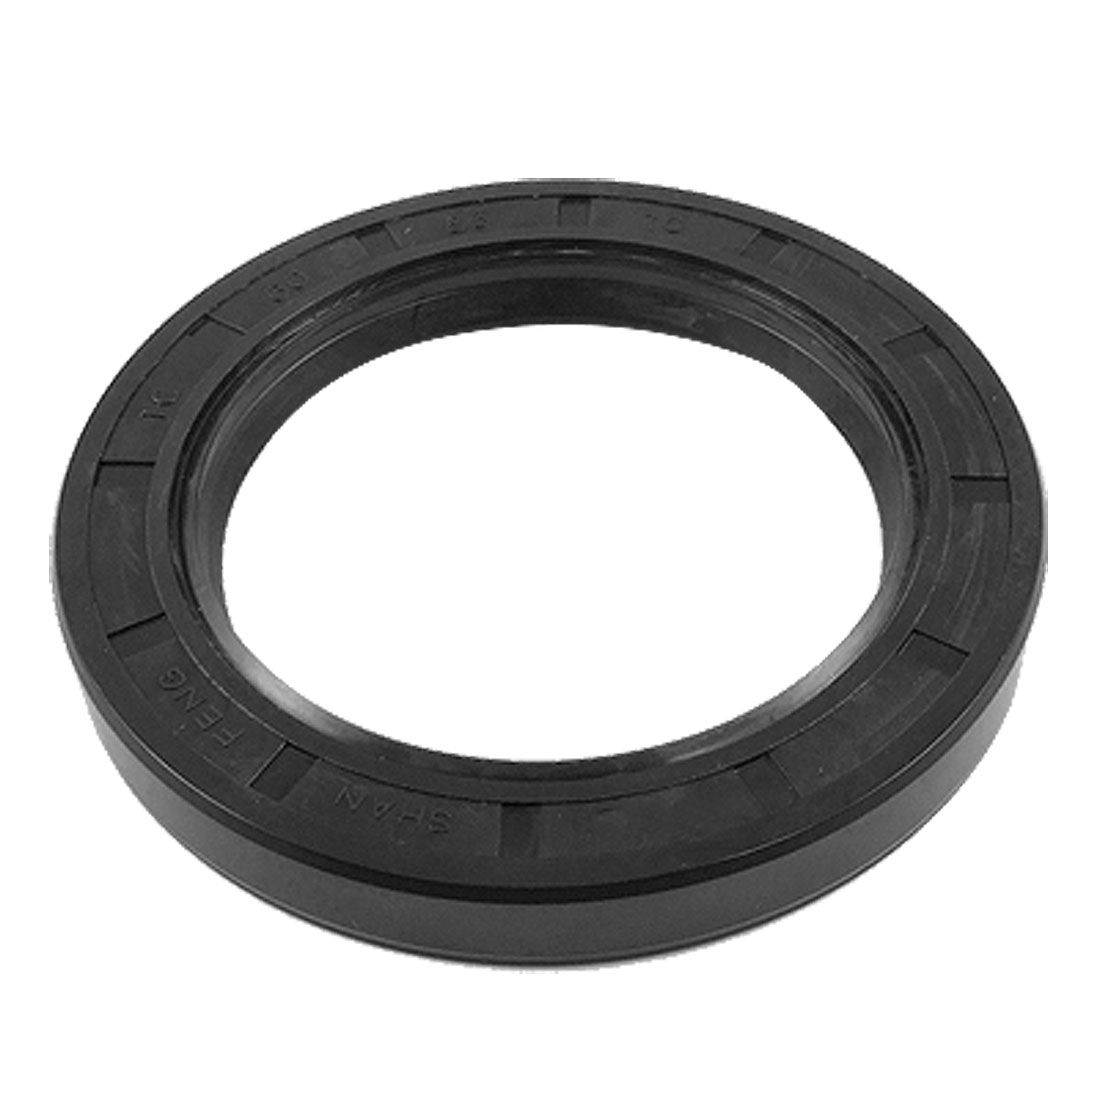 UXCELL 60X85x10mm Tc Steel Spring Metric Double Lip Oil Shaft Seal